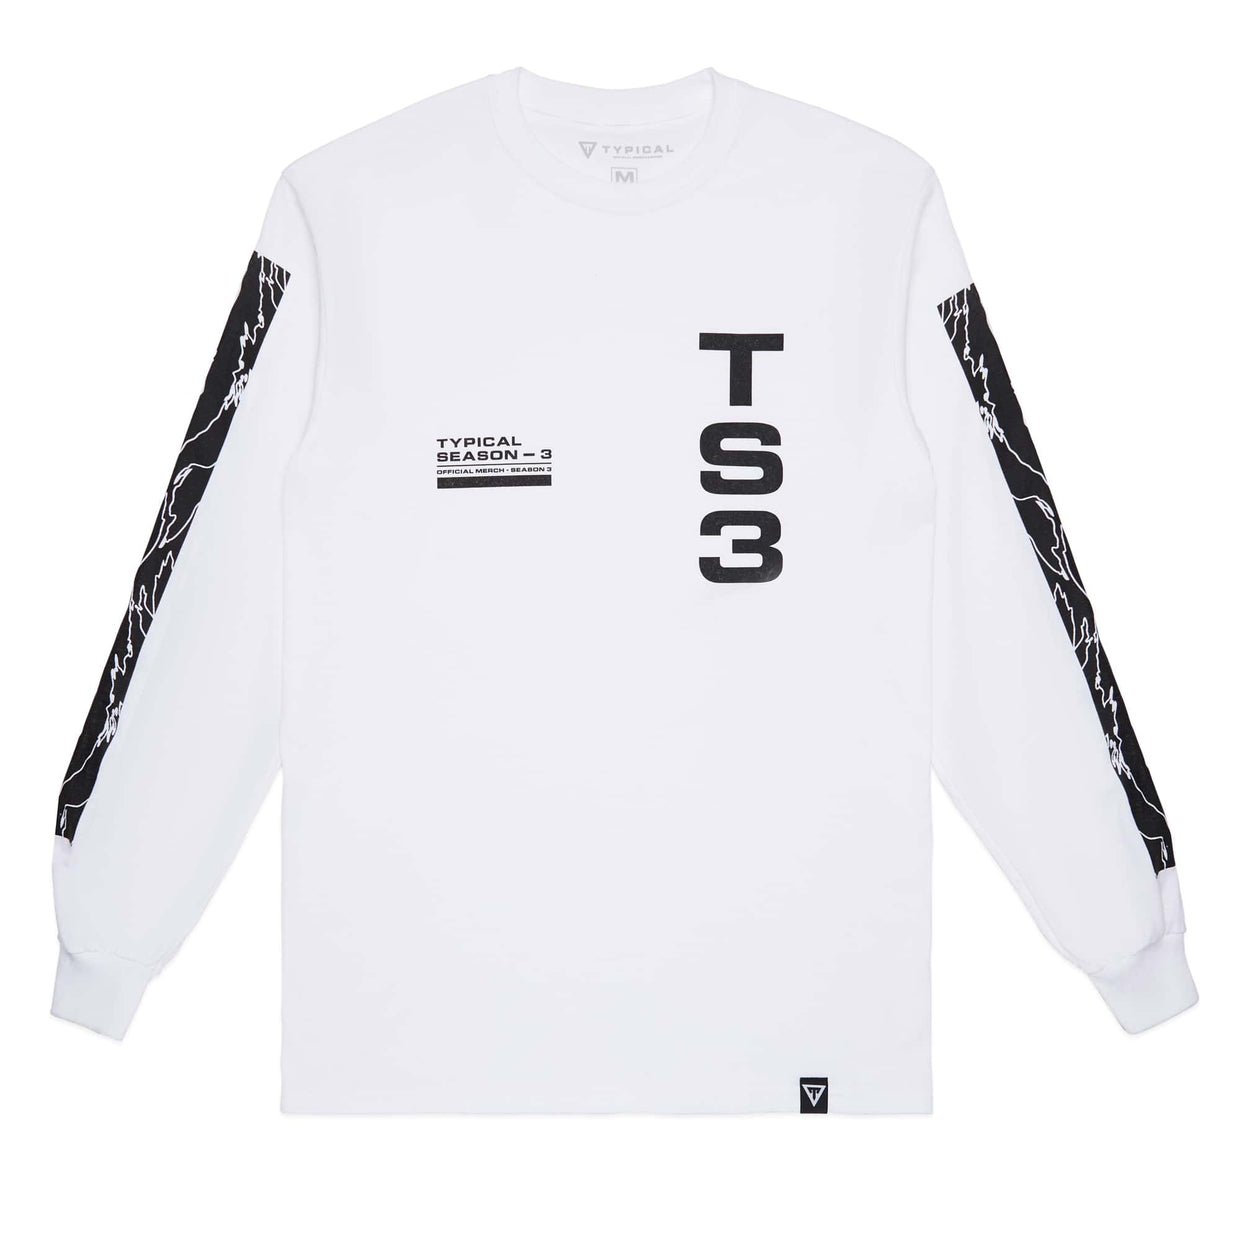 Typical 'Season 3' Long Sleeve Tee - White